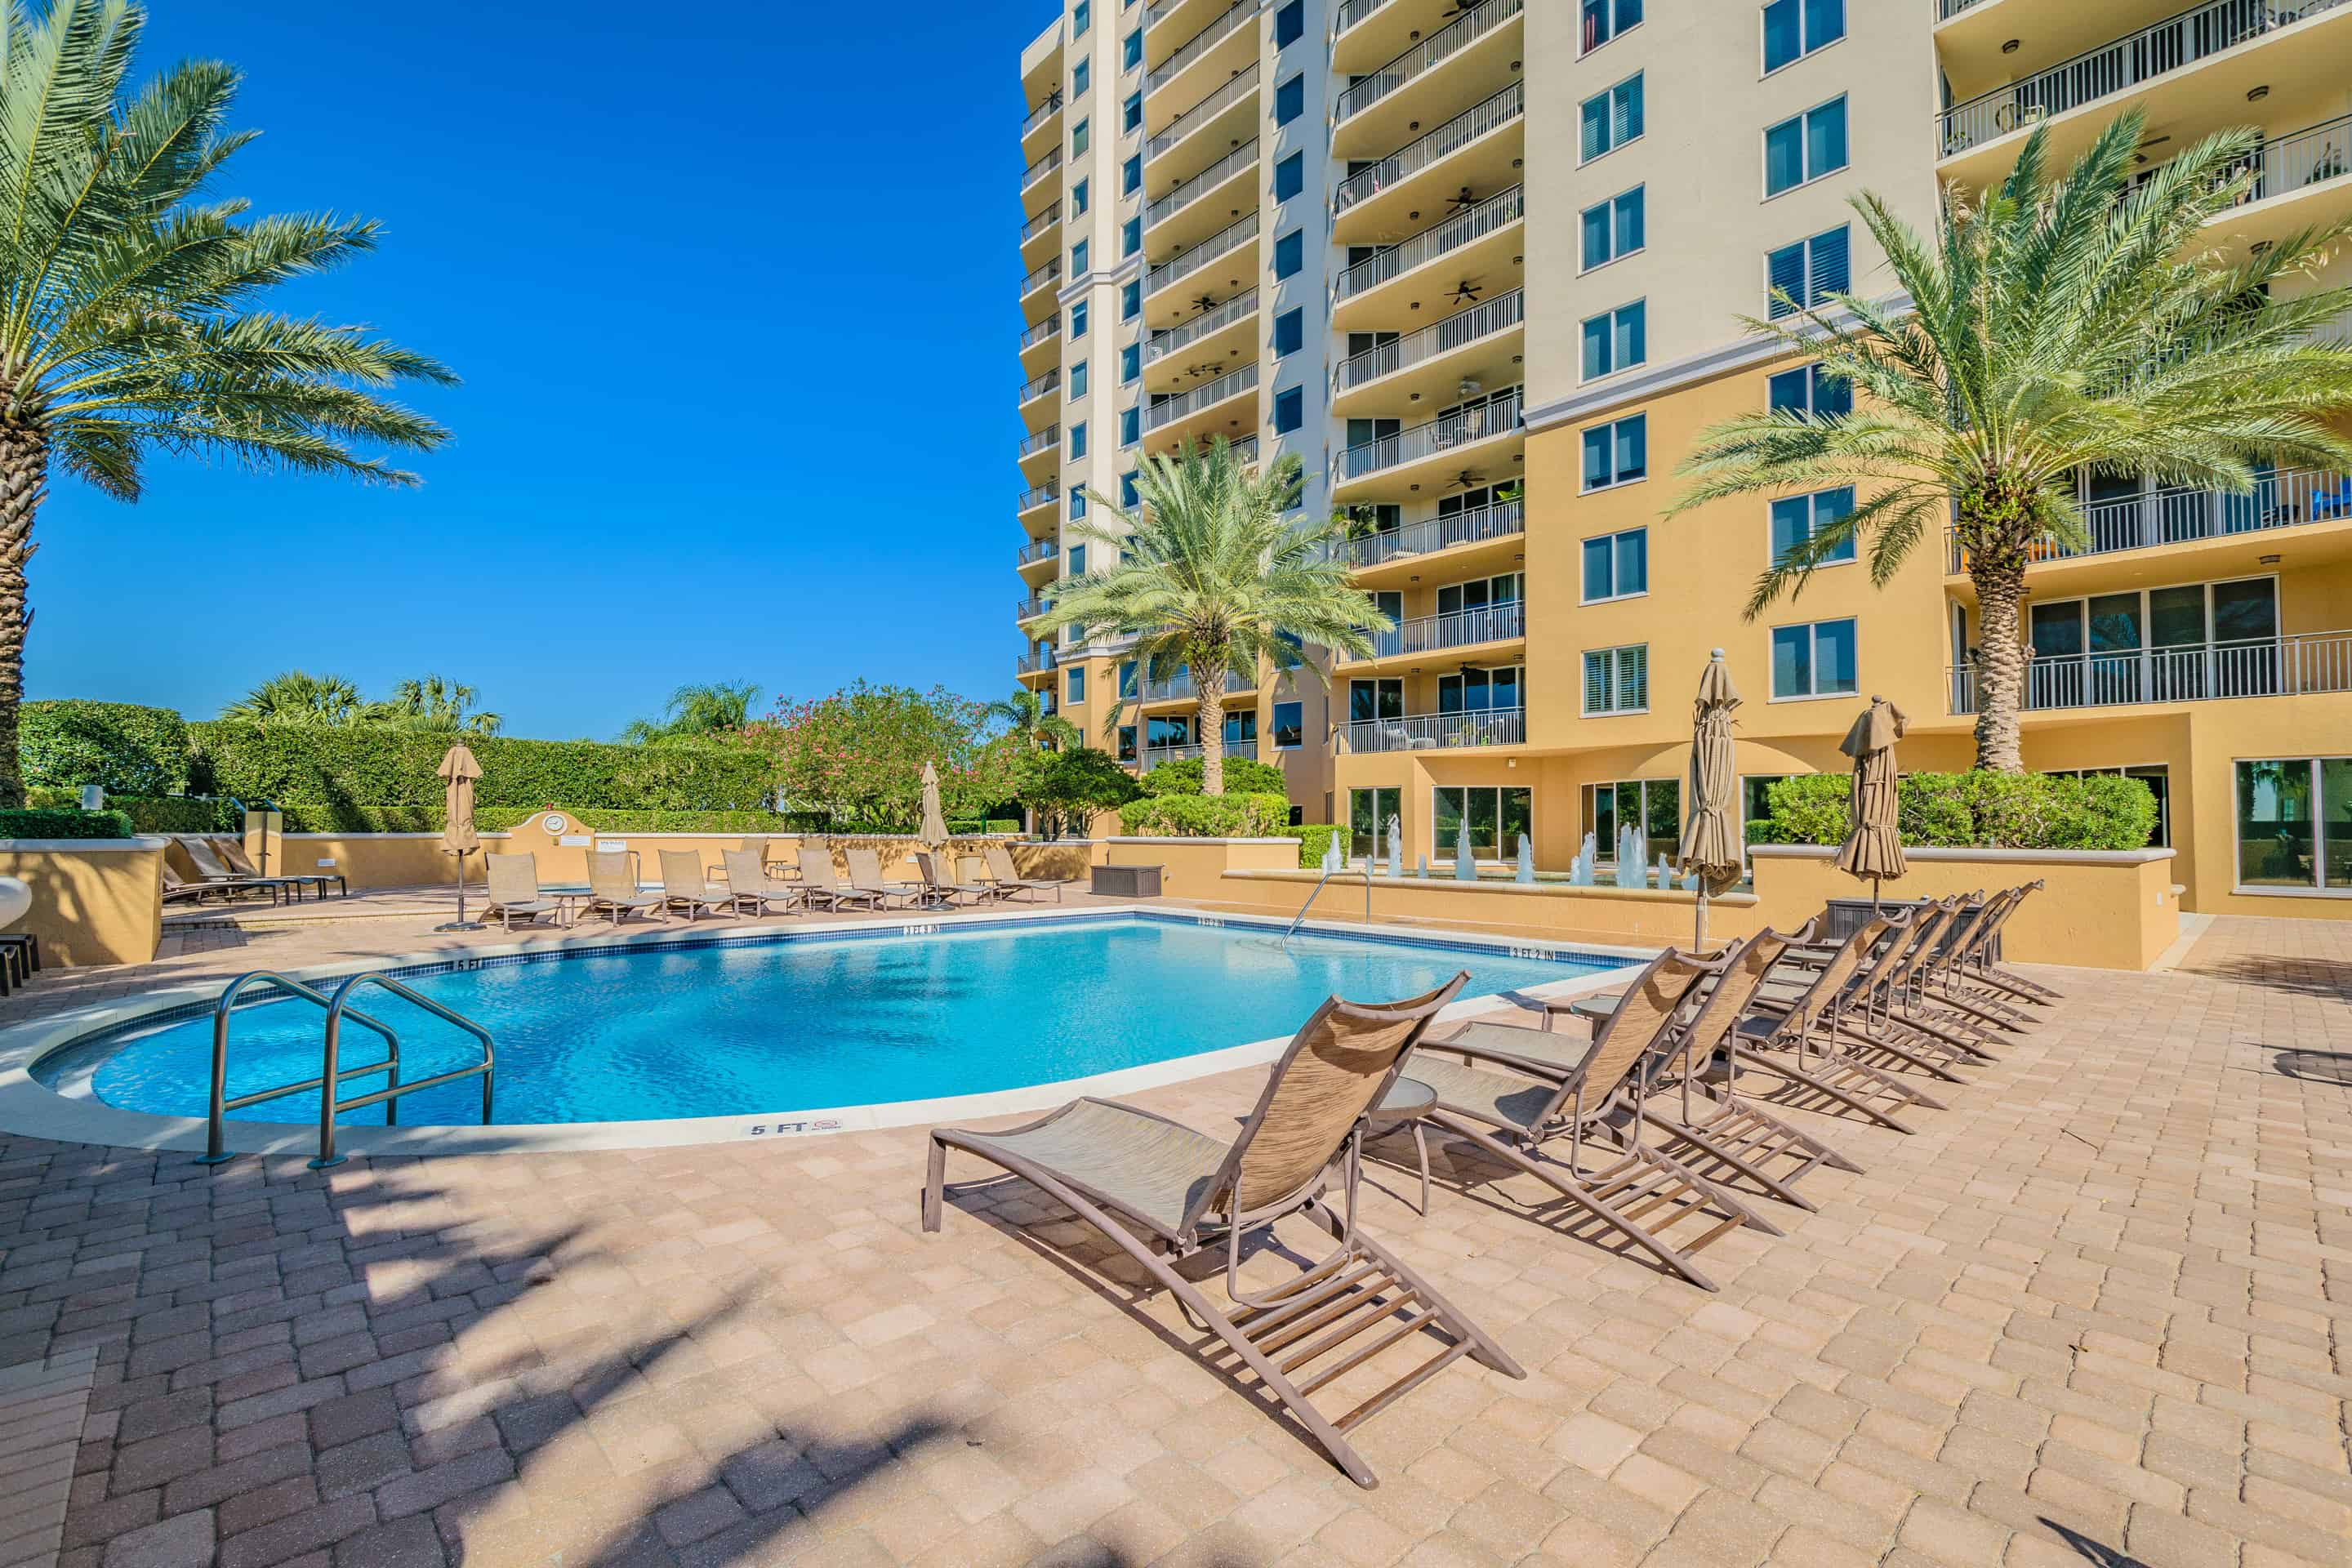 Castillo At Westshore Yacht Club Fairy Tale Listing Is